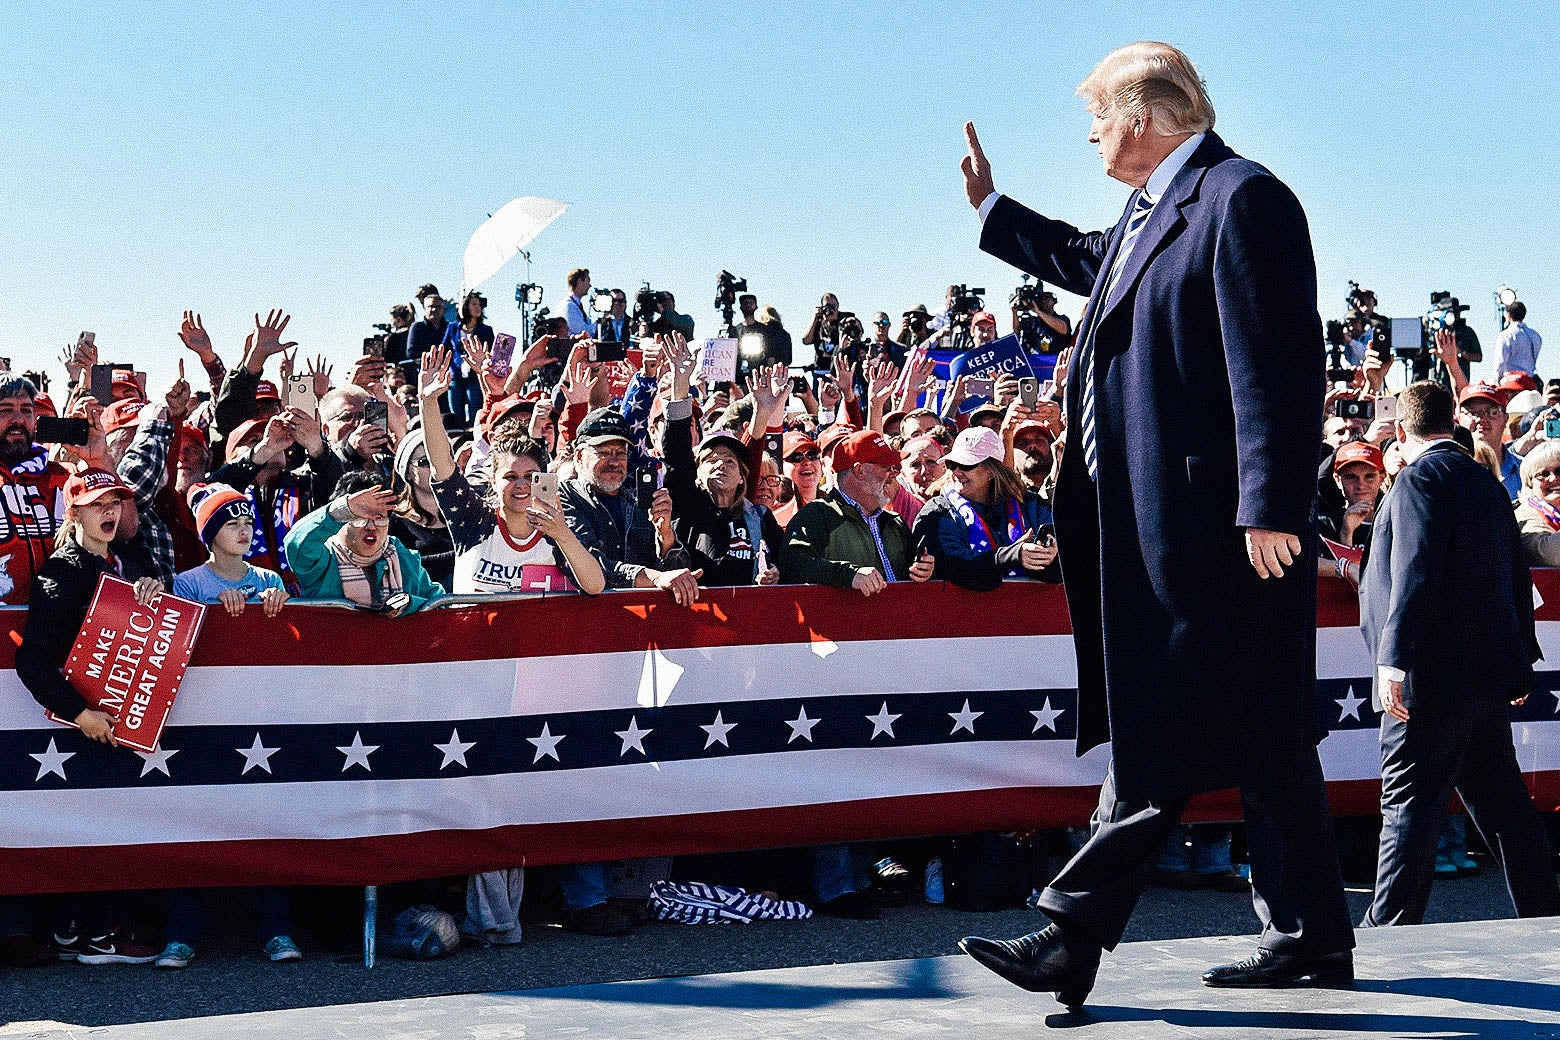 President Donald Trump arrives for a Make America Great Again rally in Elko, Nevada on Saturday.